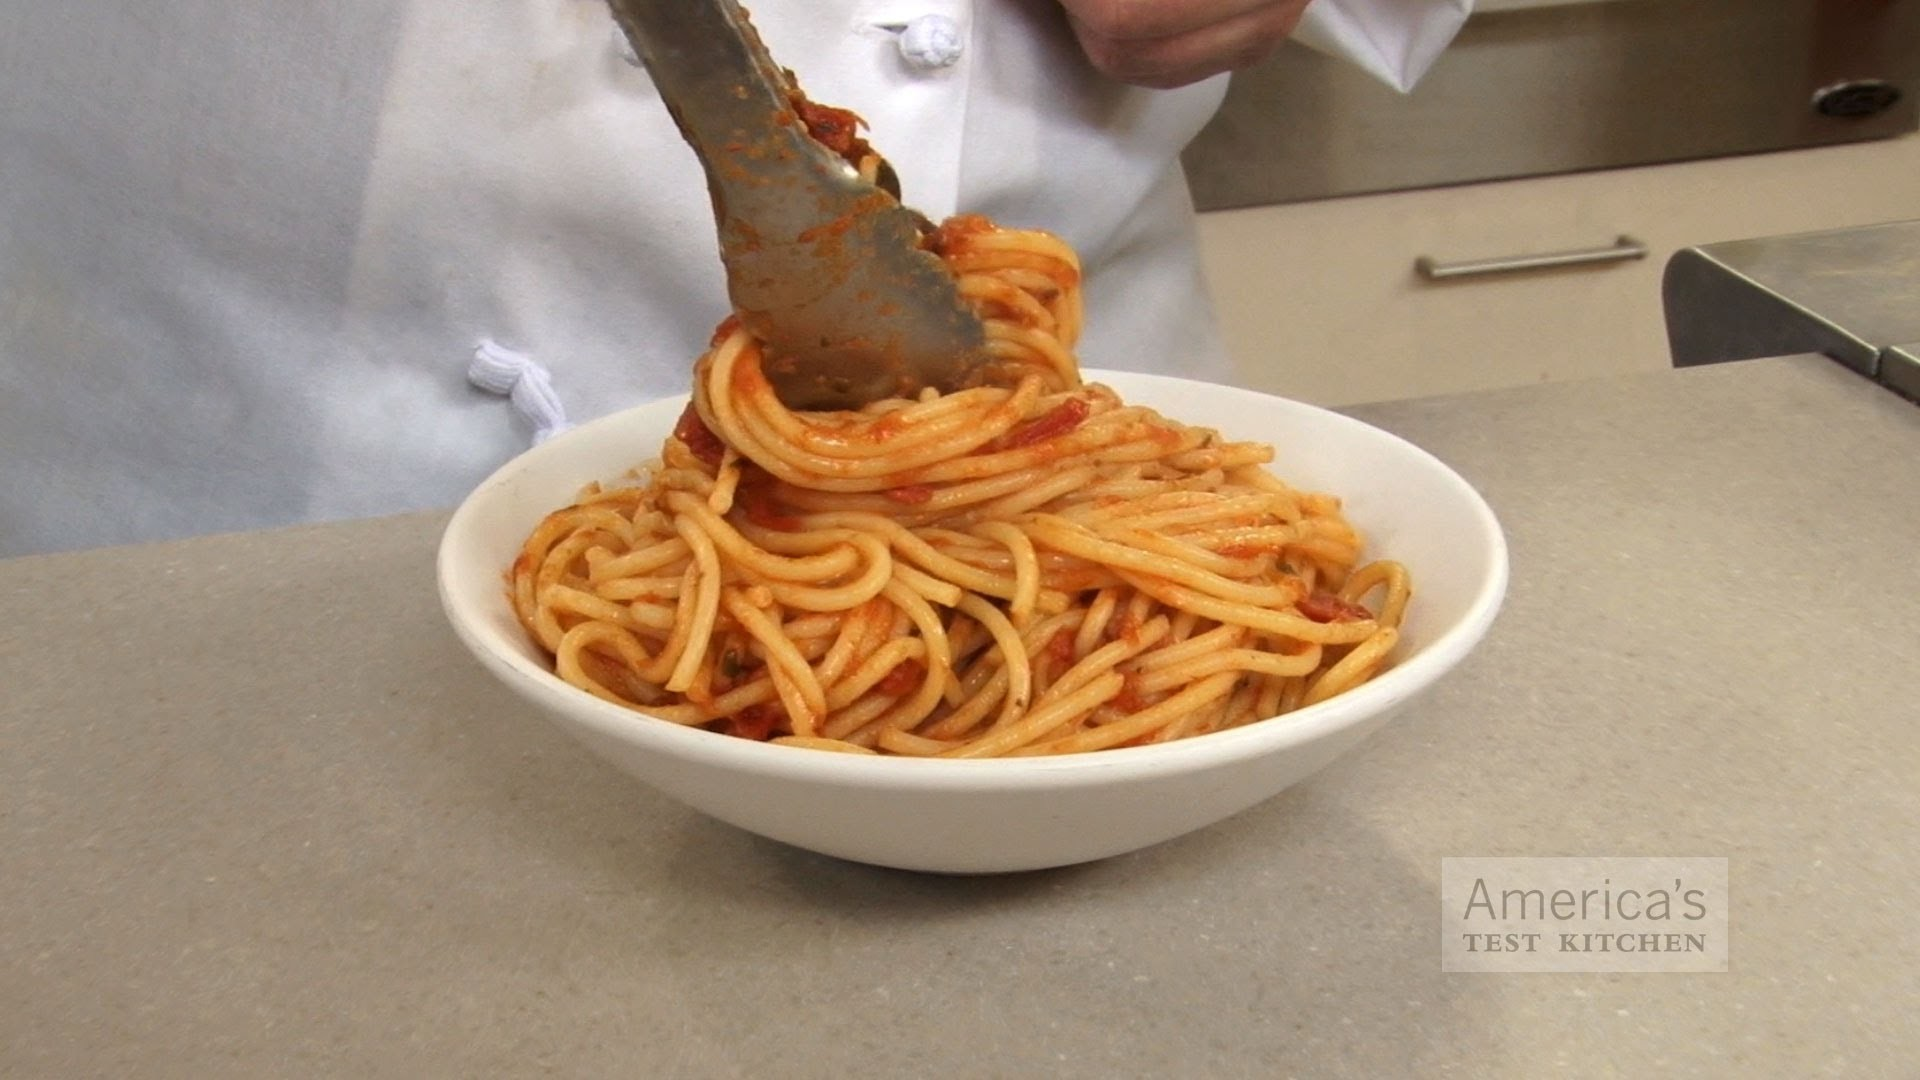 Super Quick Video Tips: How to Cook Pasta Perfectly